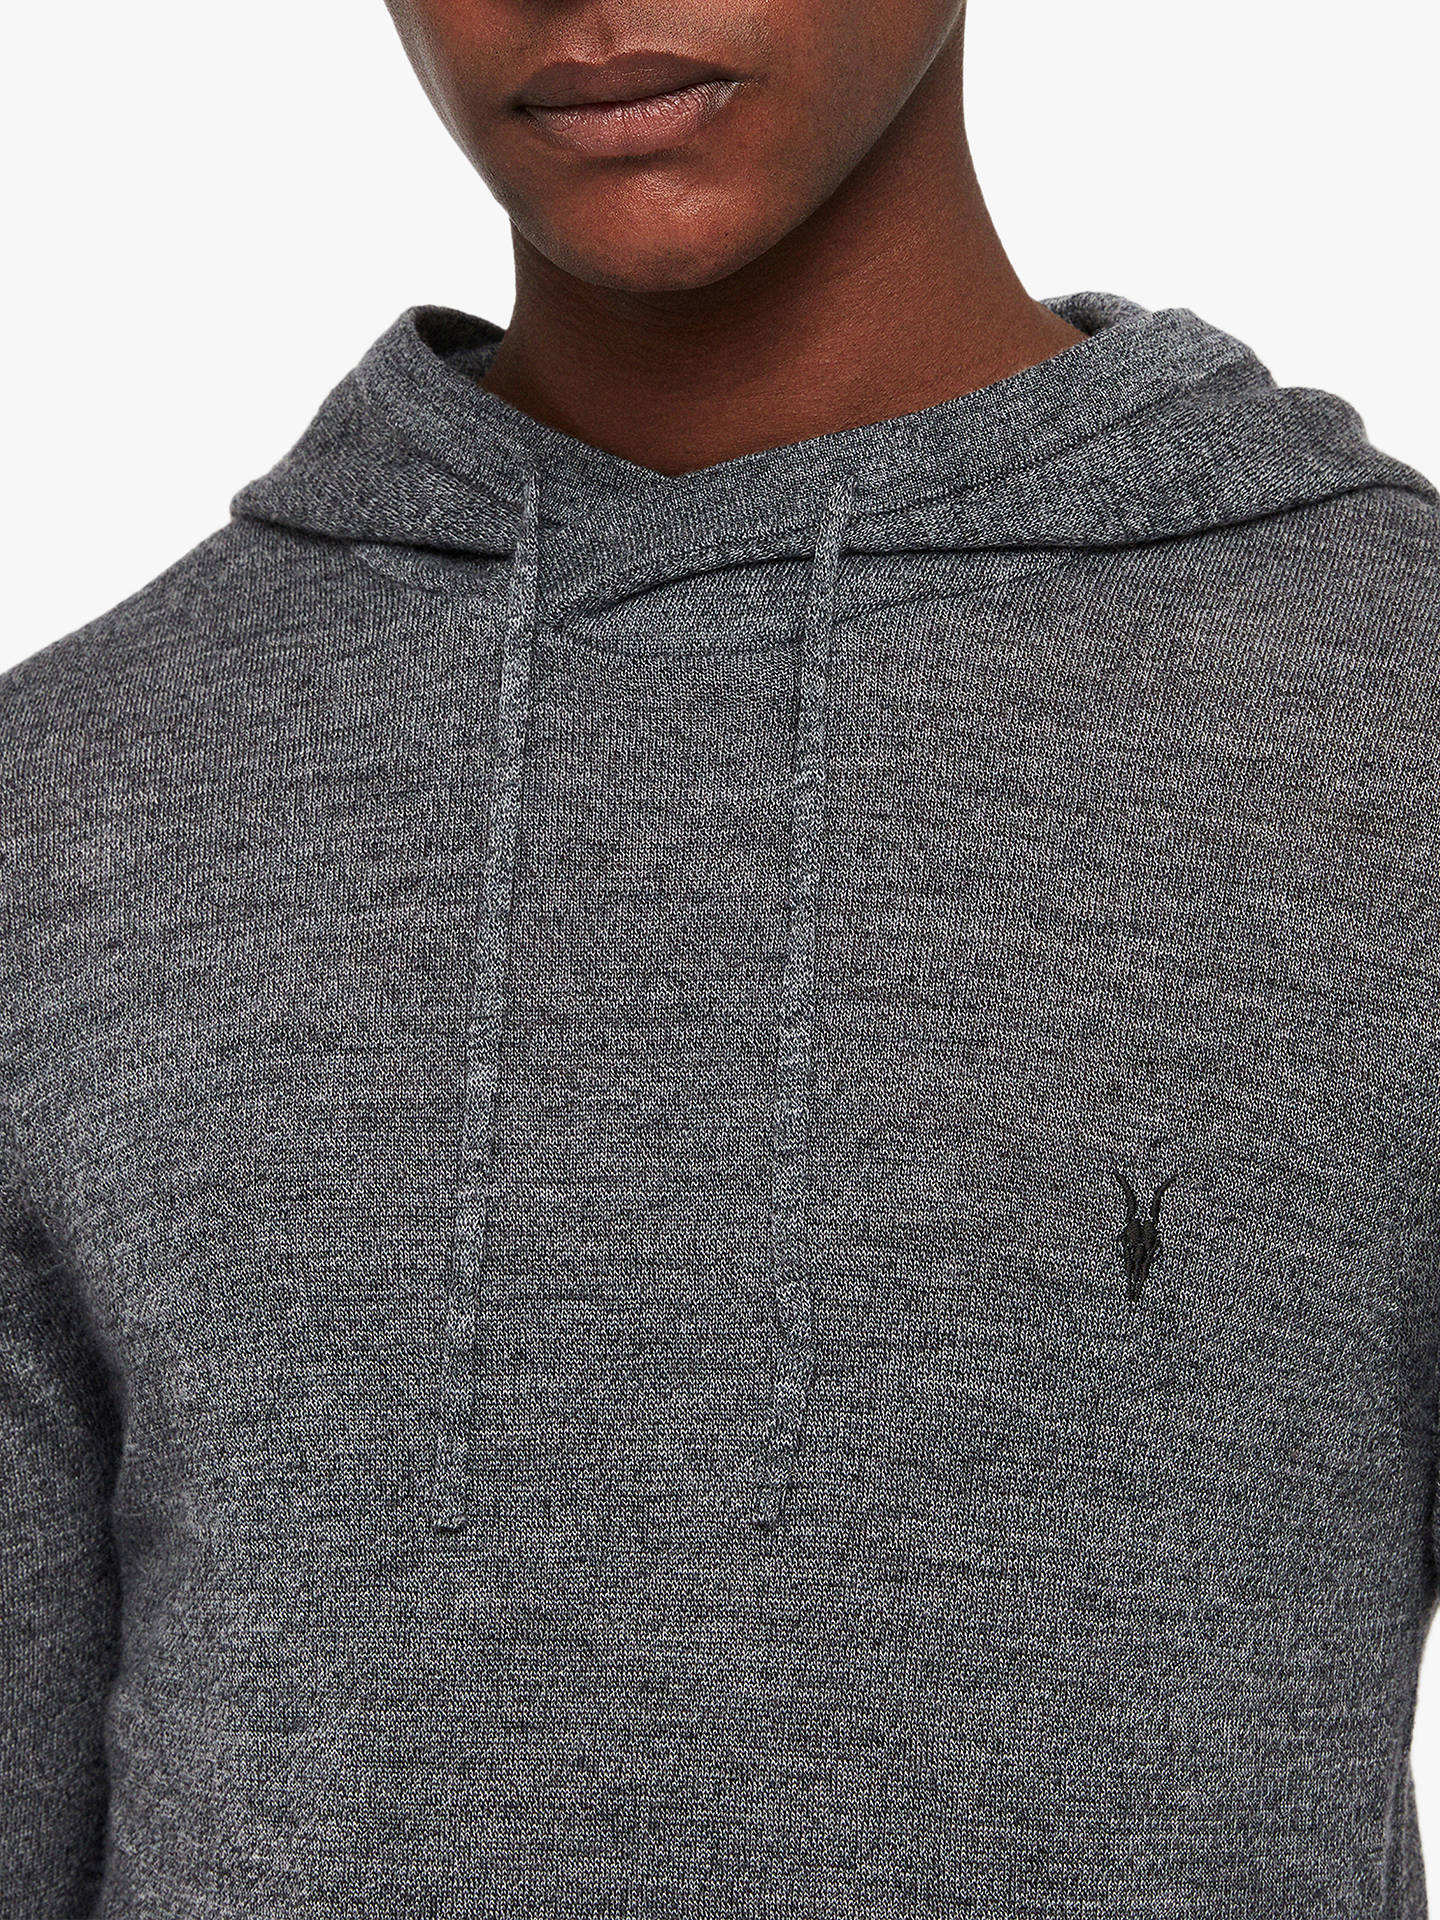 Buy AllSaints Mode Merino Pullover Hoodie, Charcoal Mouline, XS Online at johnlewis.com